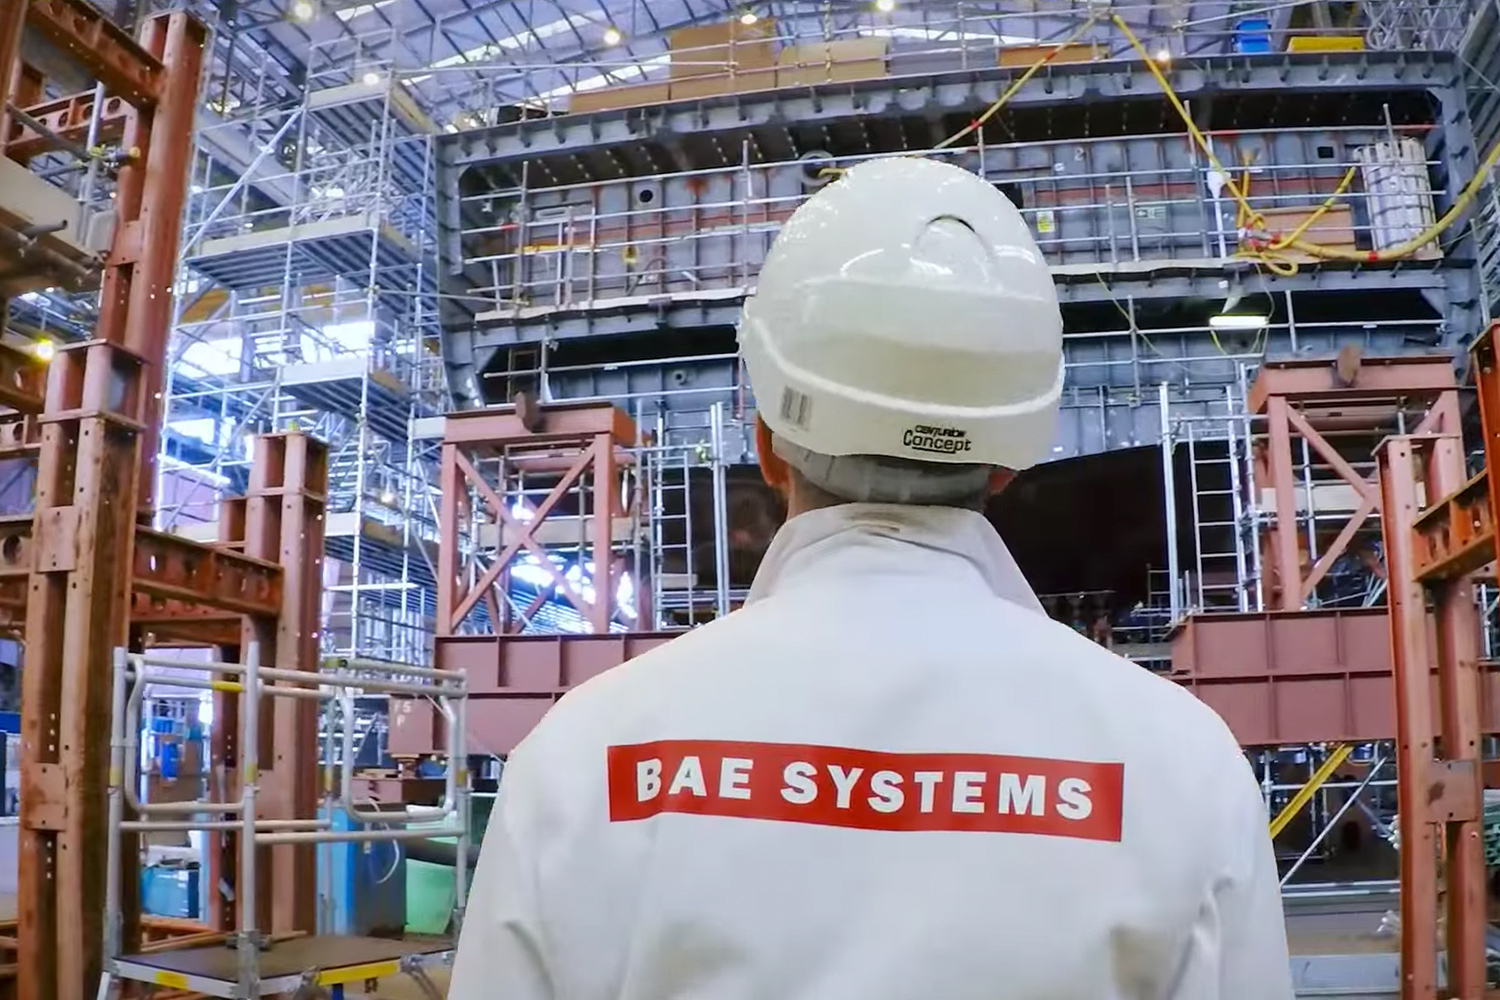 BAE_Systems_CaseStudy_2